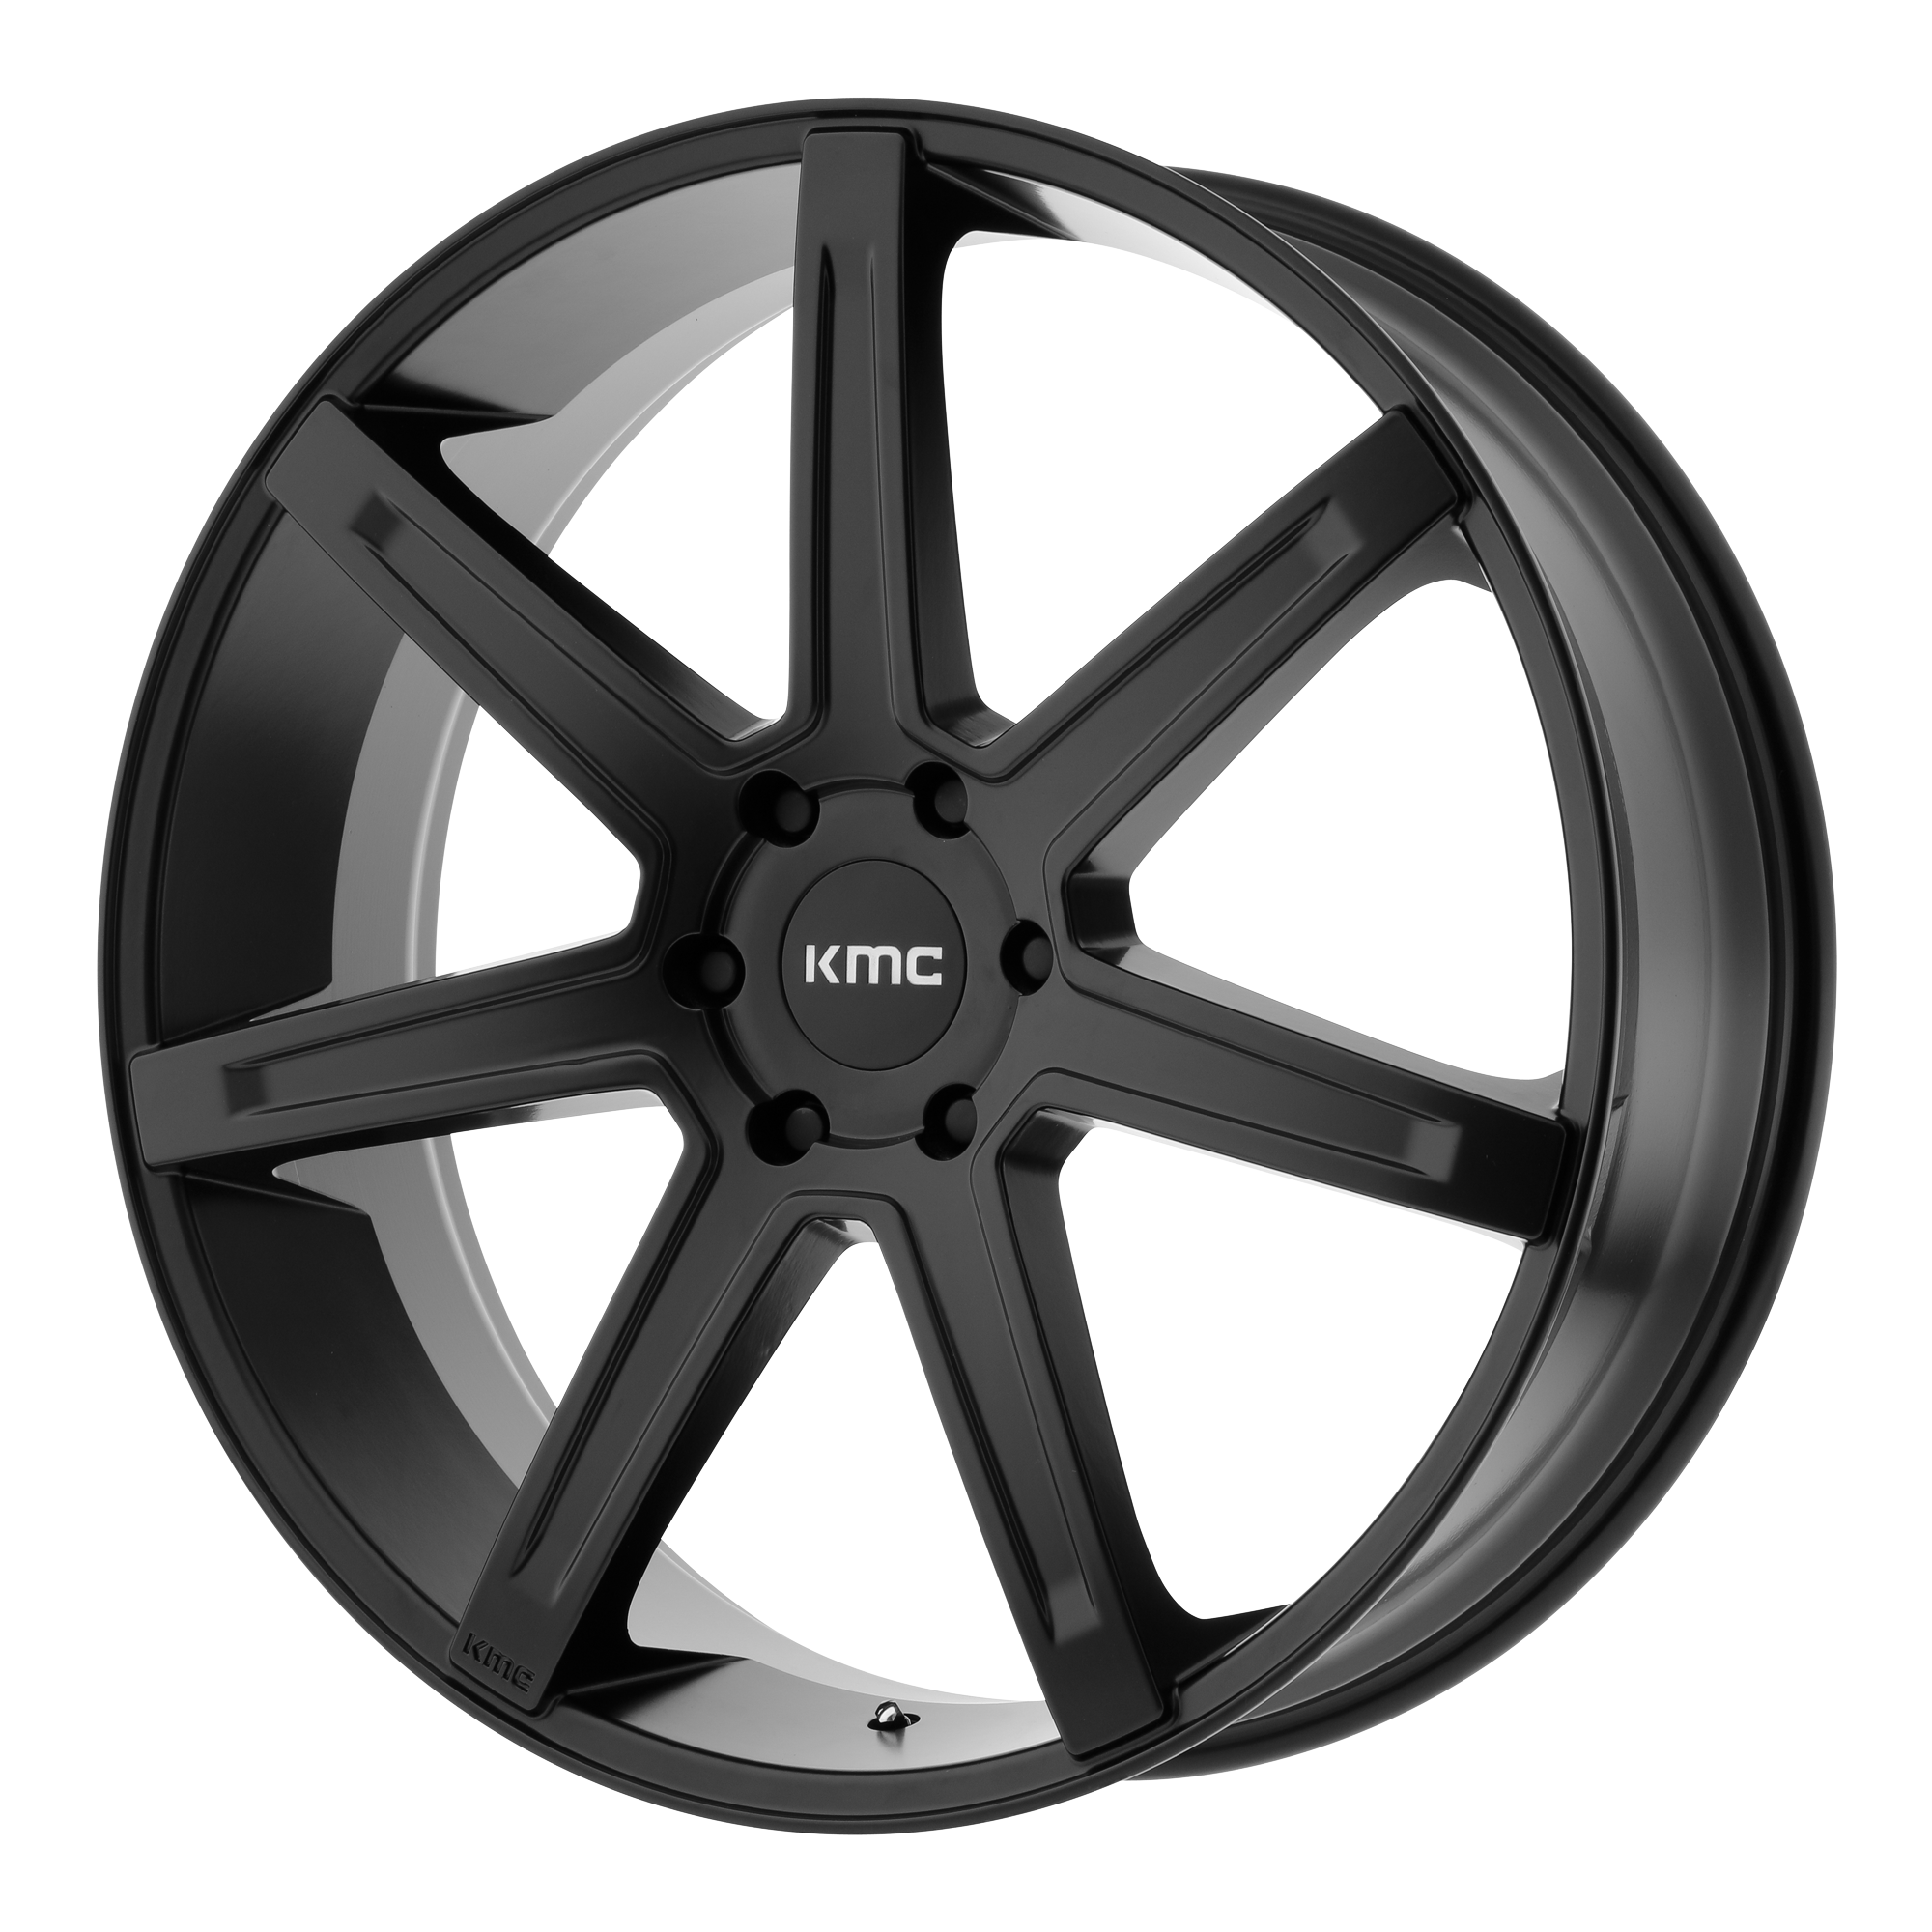 KMC Revert Wheels